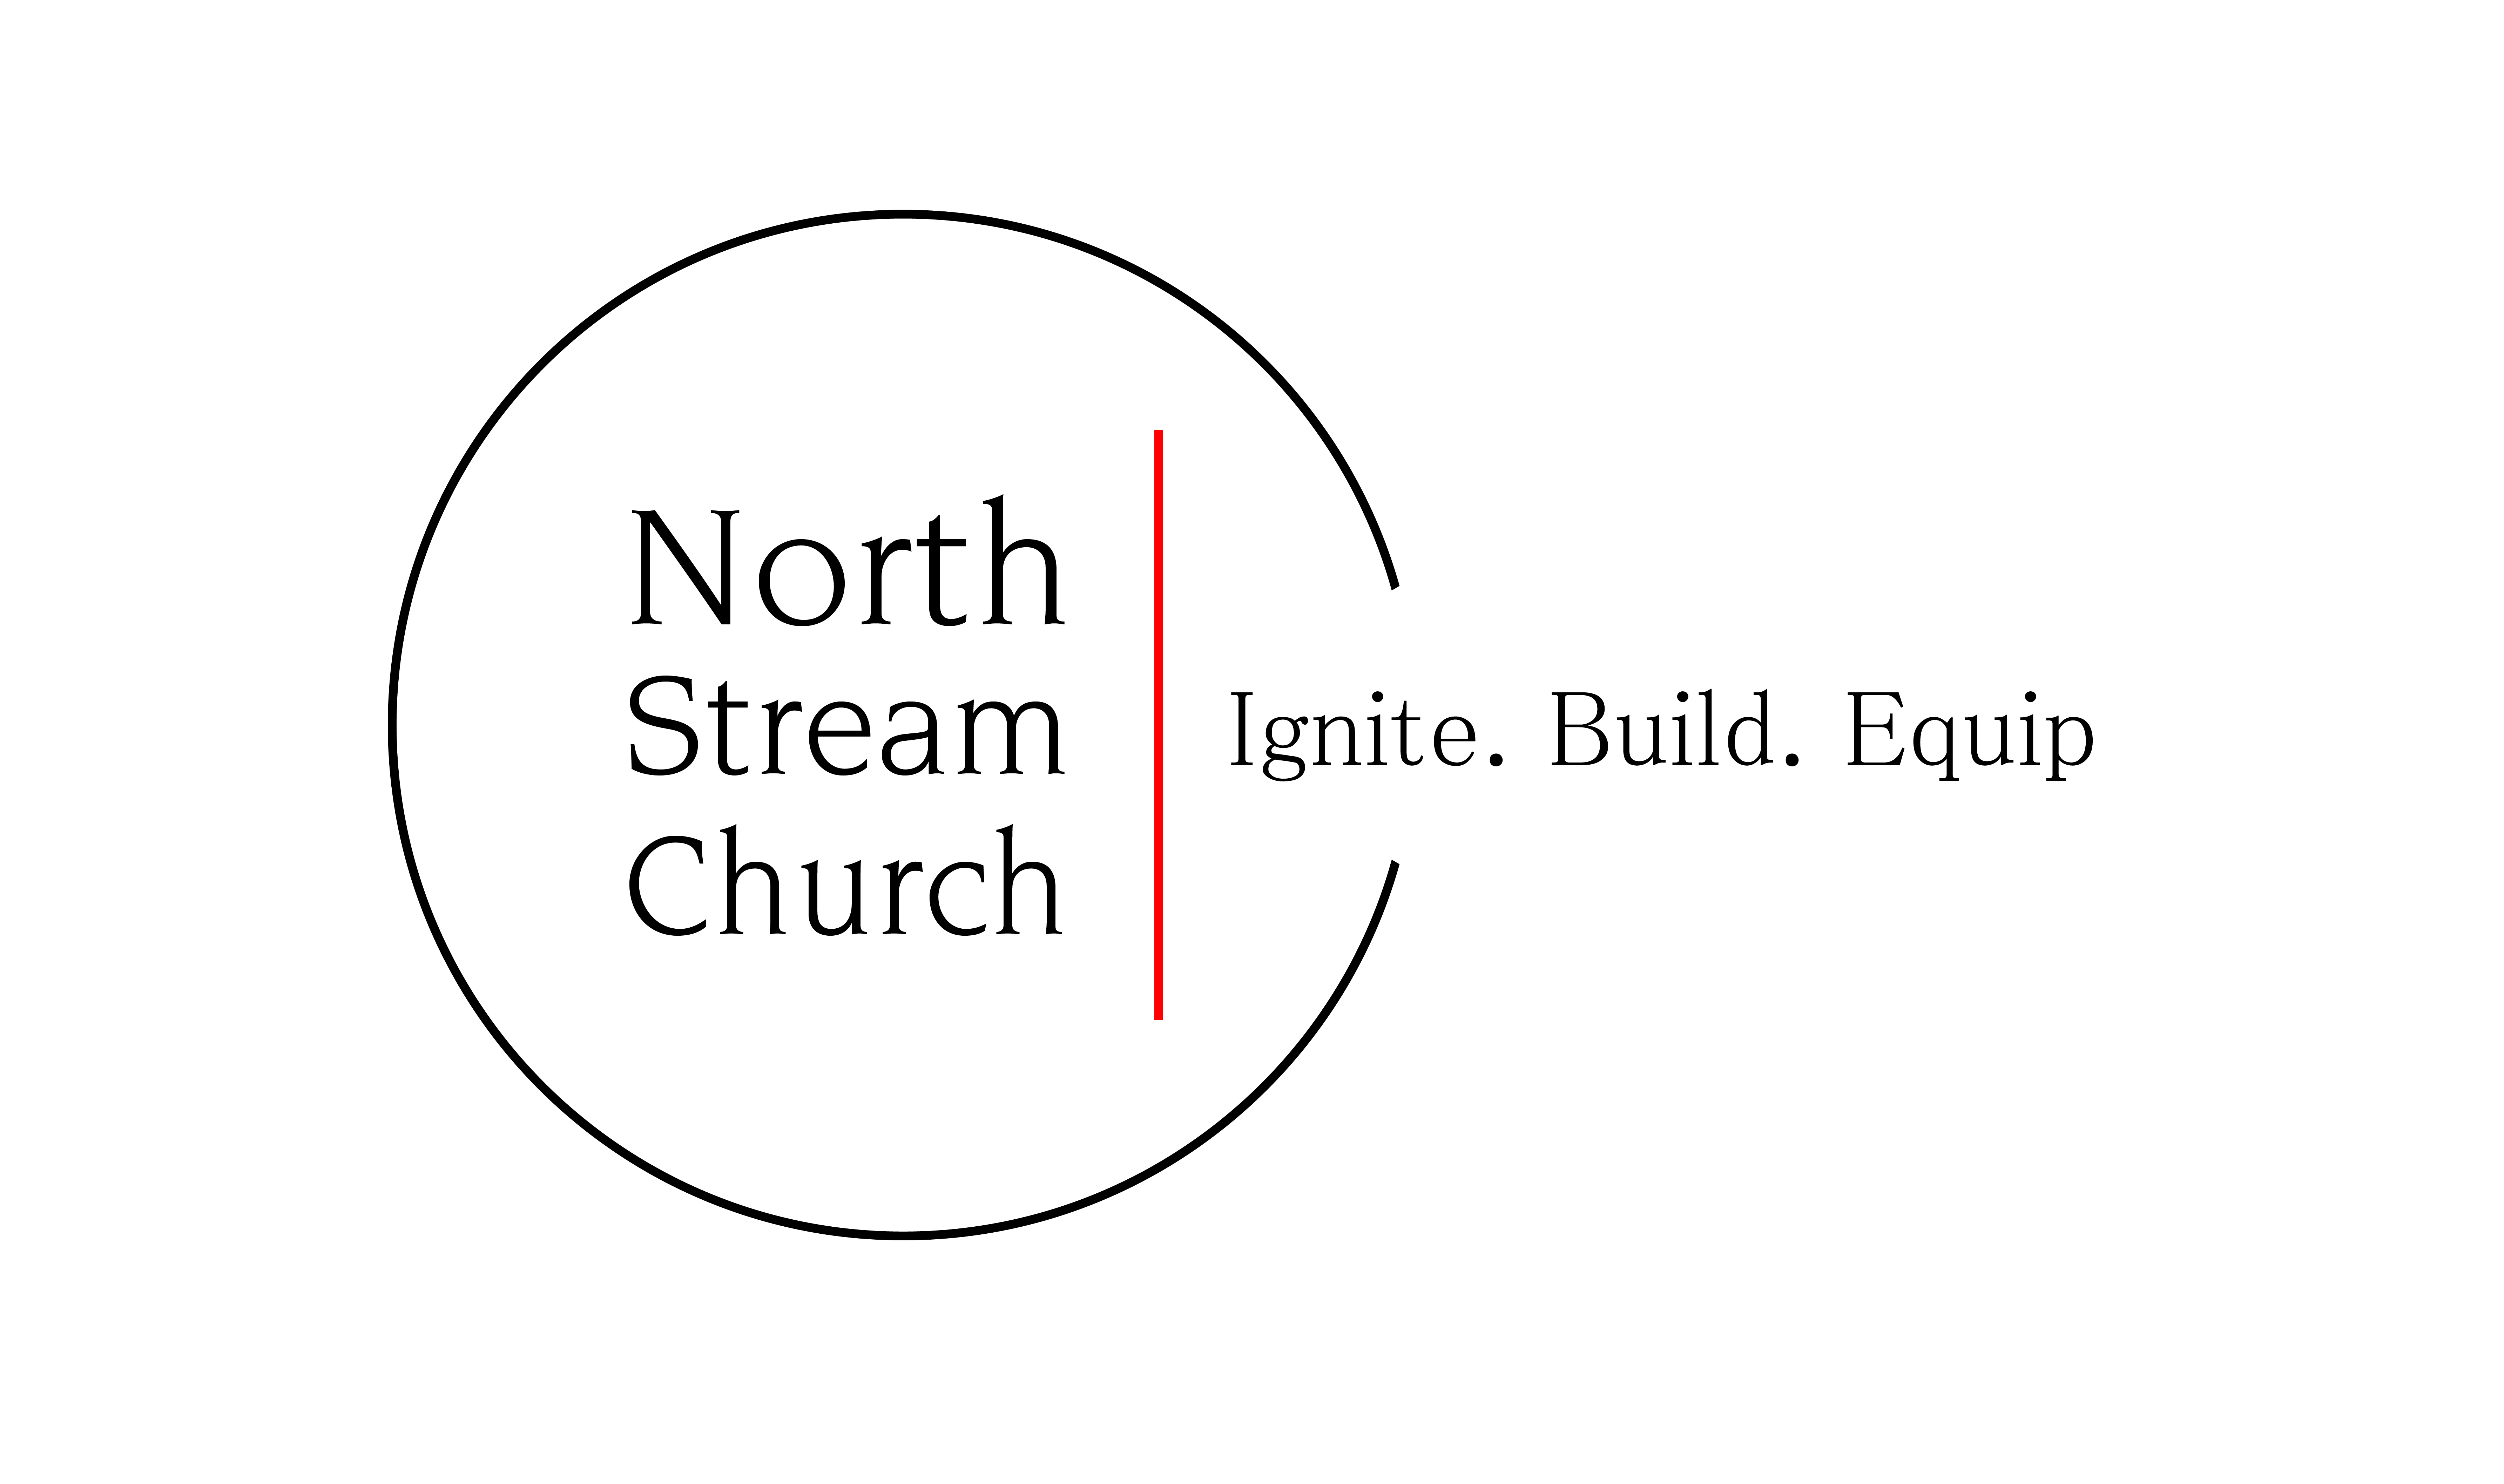 Logo Design by Jozef Huserka - Entry No. 75 in the Logo Design Contest Creative Logo Design for North Stream Church.